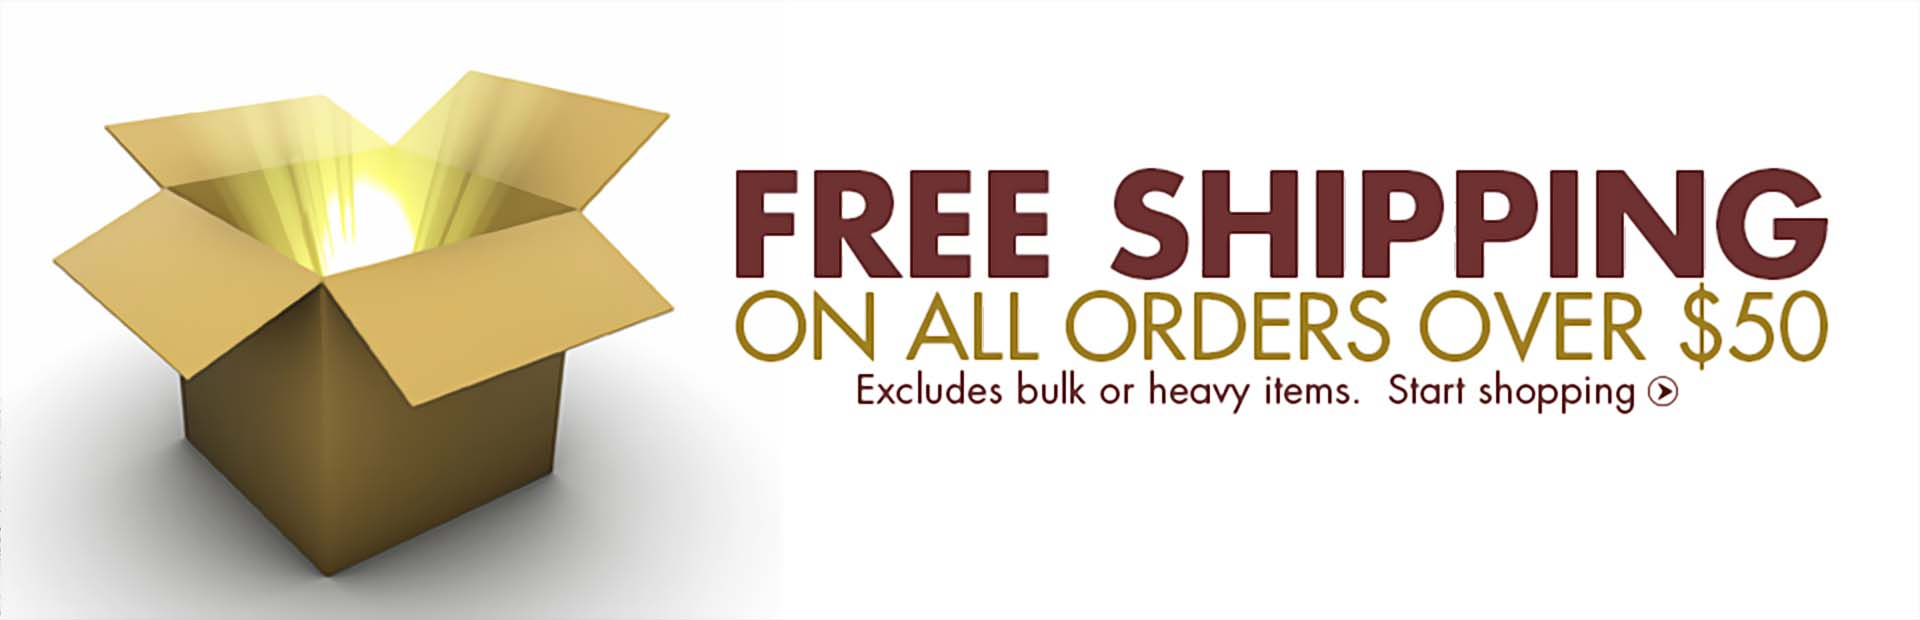 Get free shipping on all orders over $50! Offer excludes bulk or heavy items. Click here to start shopping.